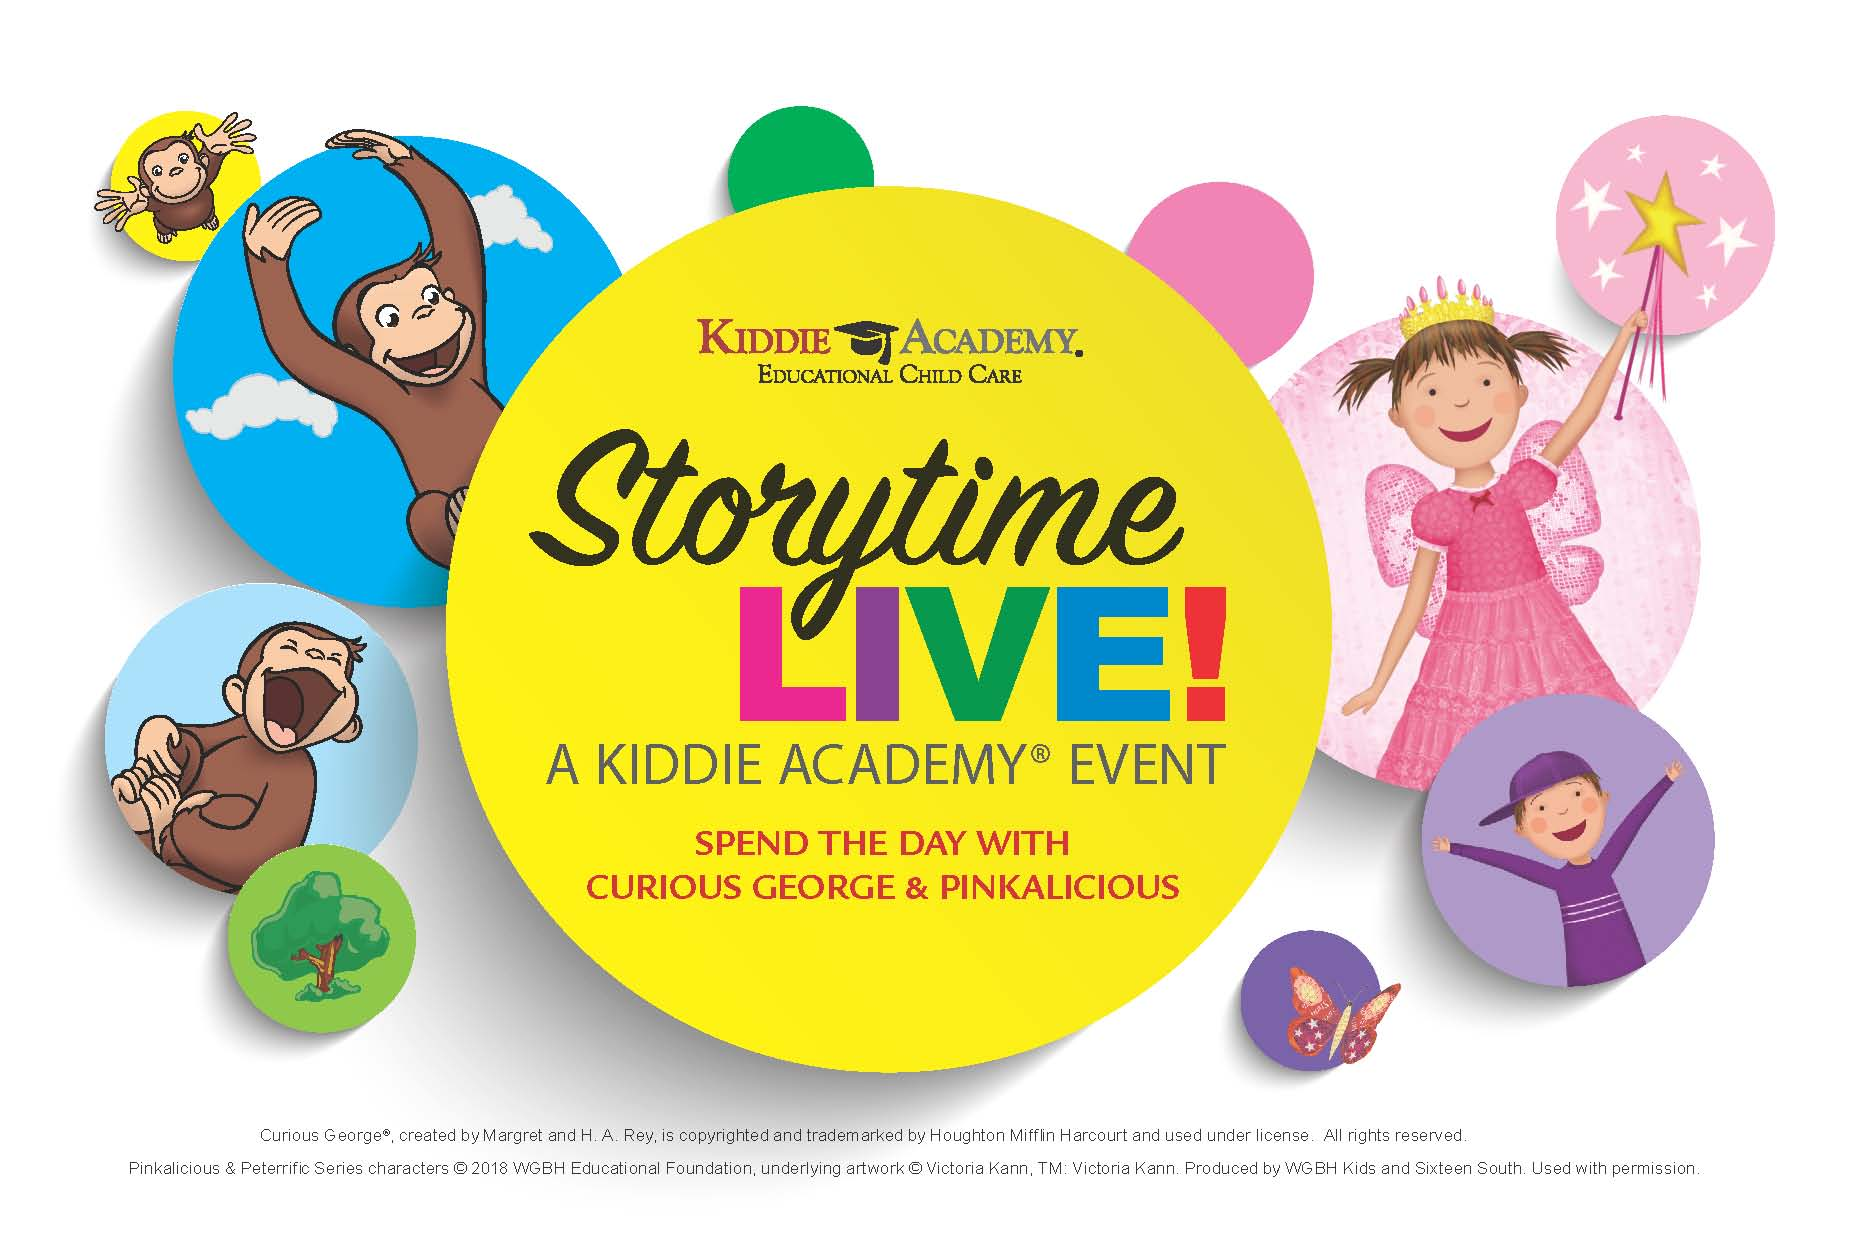 Kiddie Academy of Brentwood promotes child literacy with Storytime LIVE! event